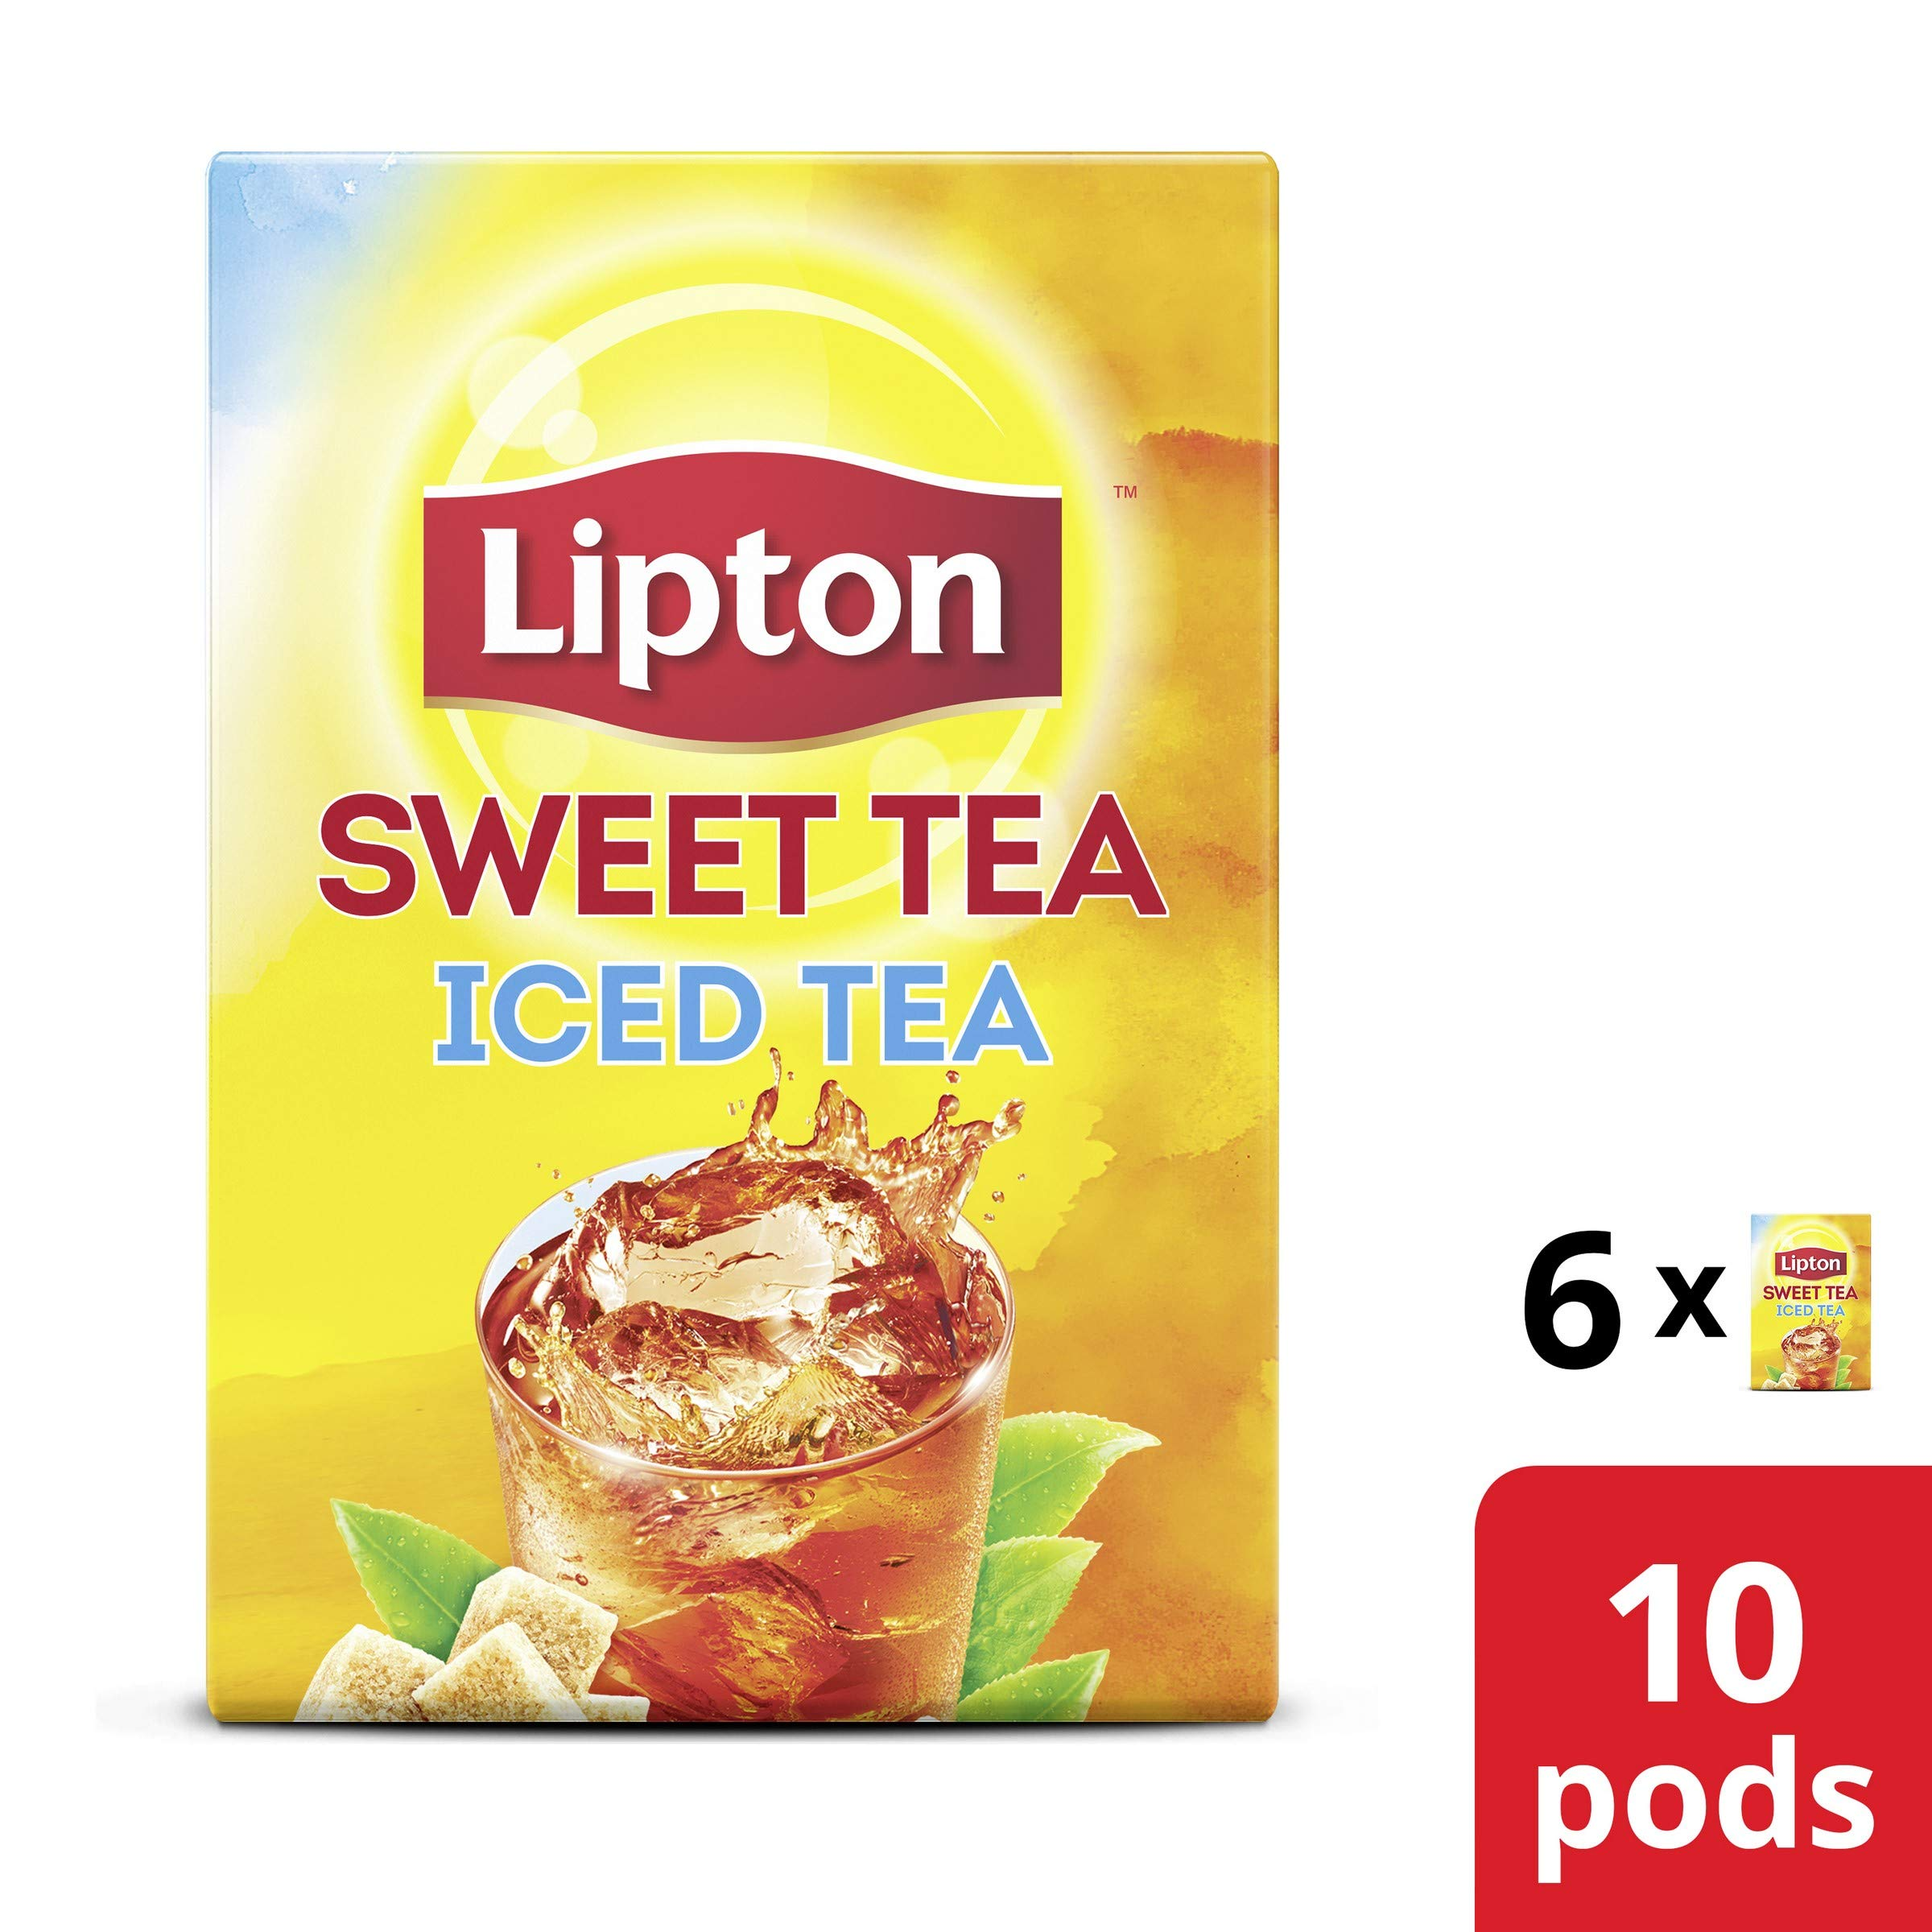 Lipton Iced Tea K-Cups for Keurig brewers Southern Sweet Tea 100% Rainforest Alliance Certified 10 count pack of 6 by Lipton